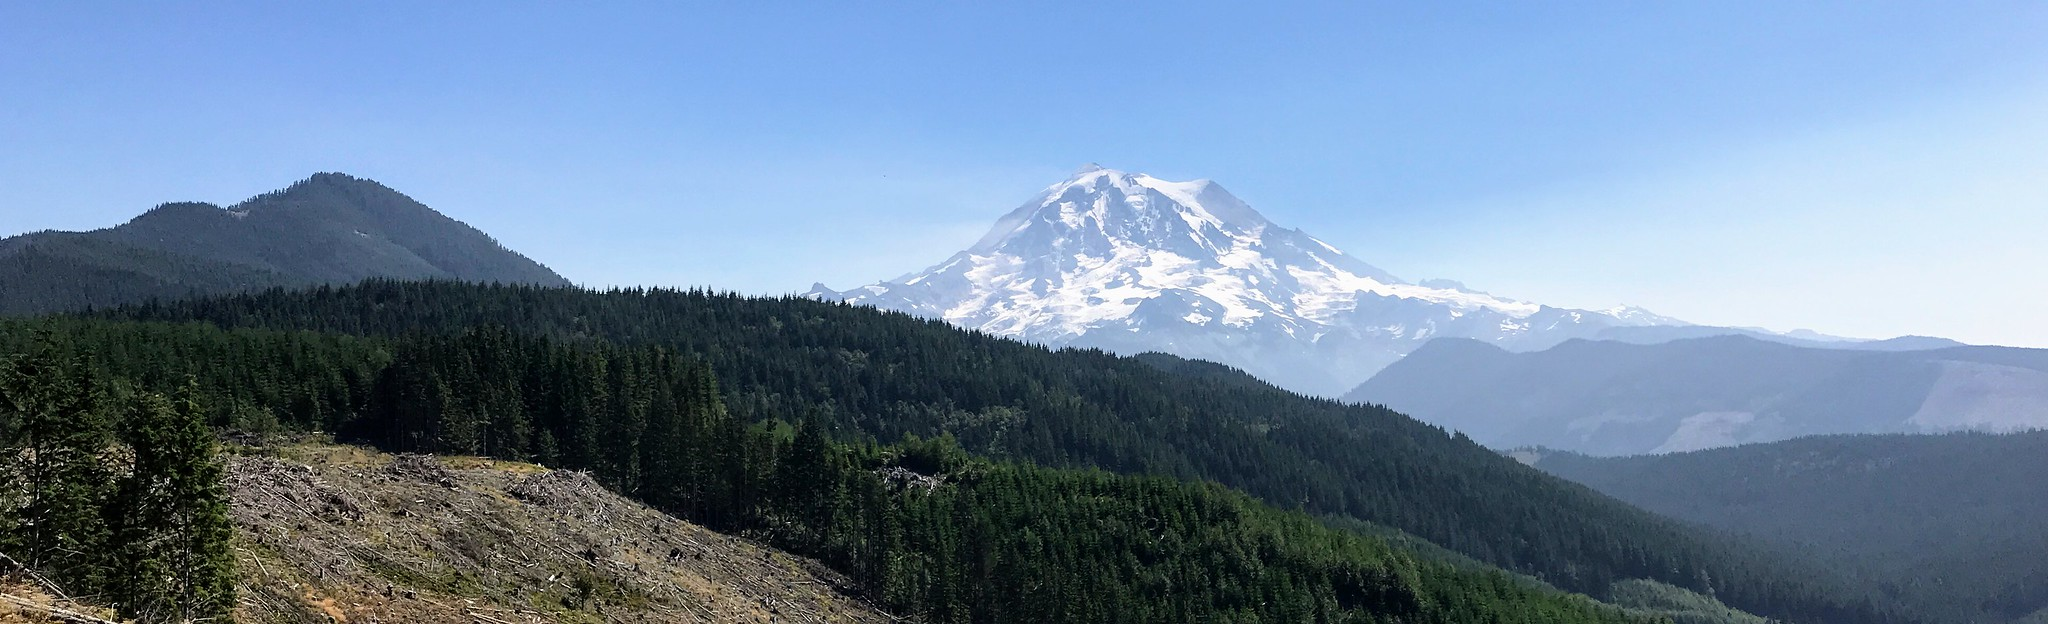 Mt Rainier from the road to Mowich Lake